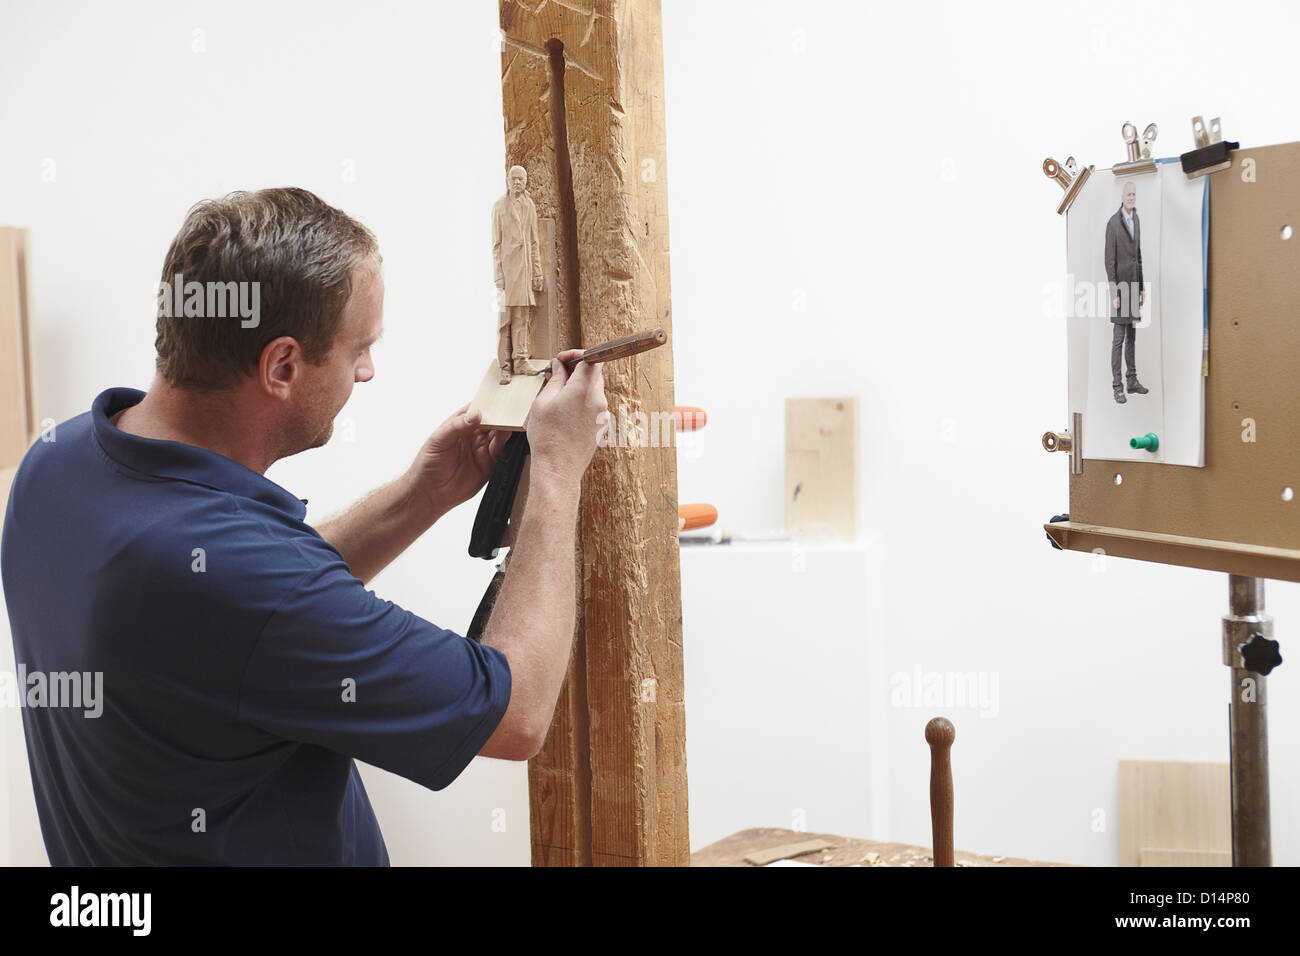 Worker chiseling figure from wood Stock Photo